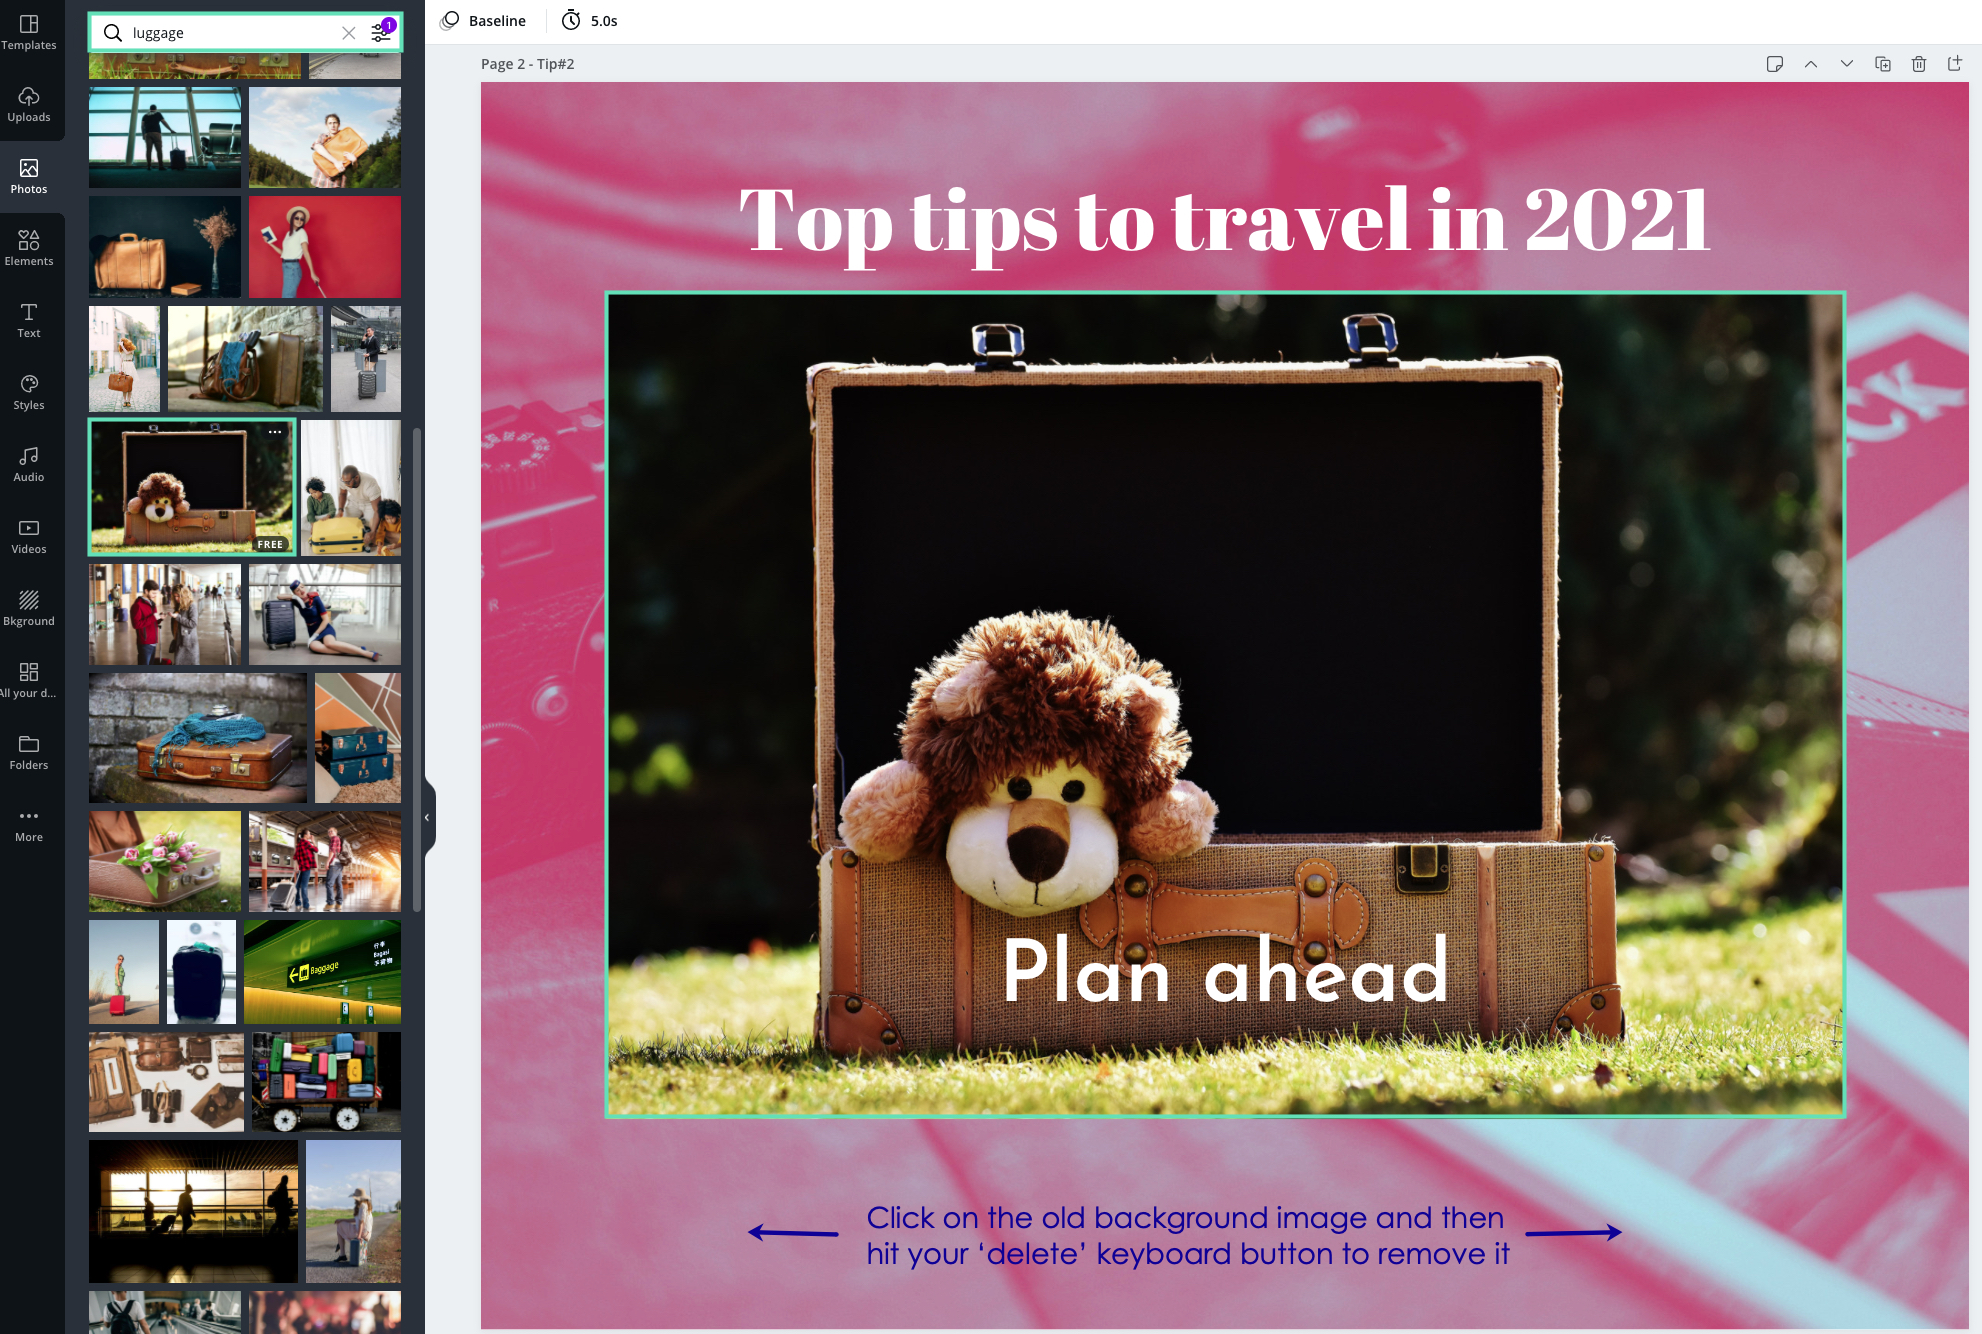 Step-7-Introduction-to-the-Travel-Agent-Toolkit.jpg